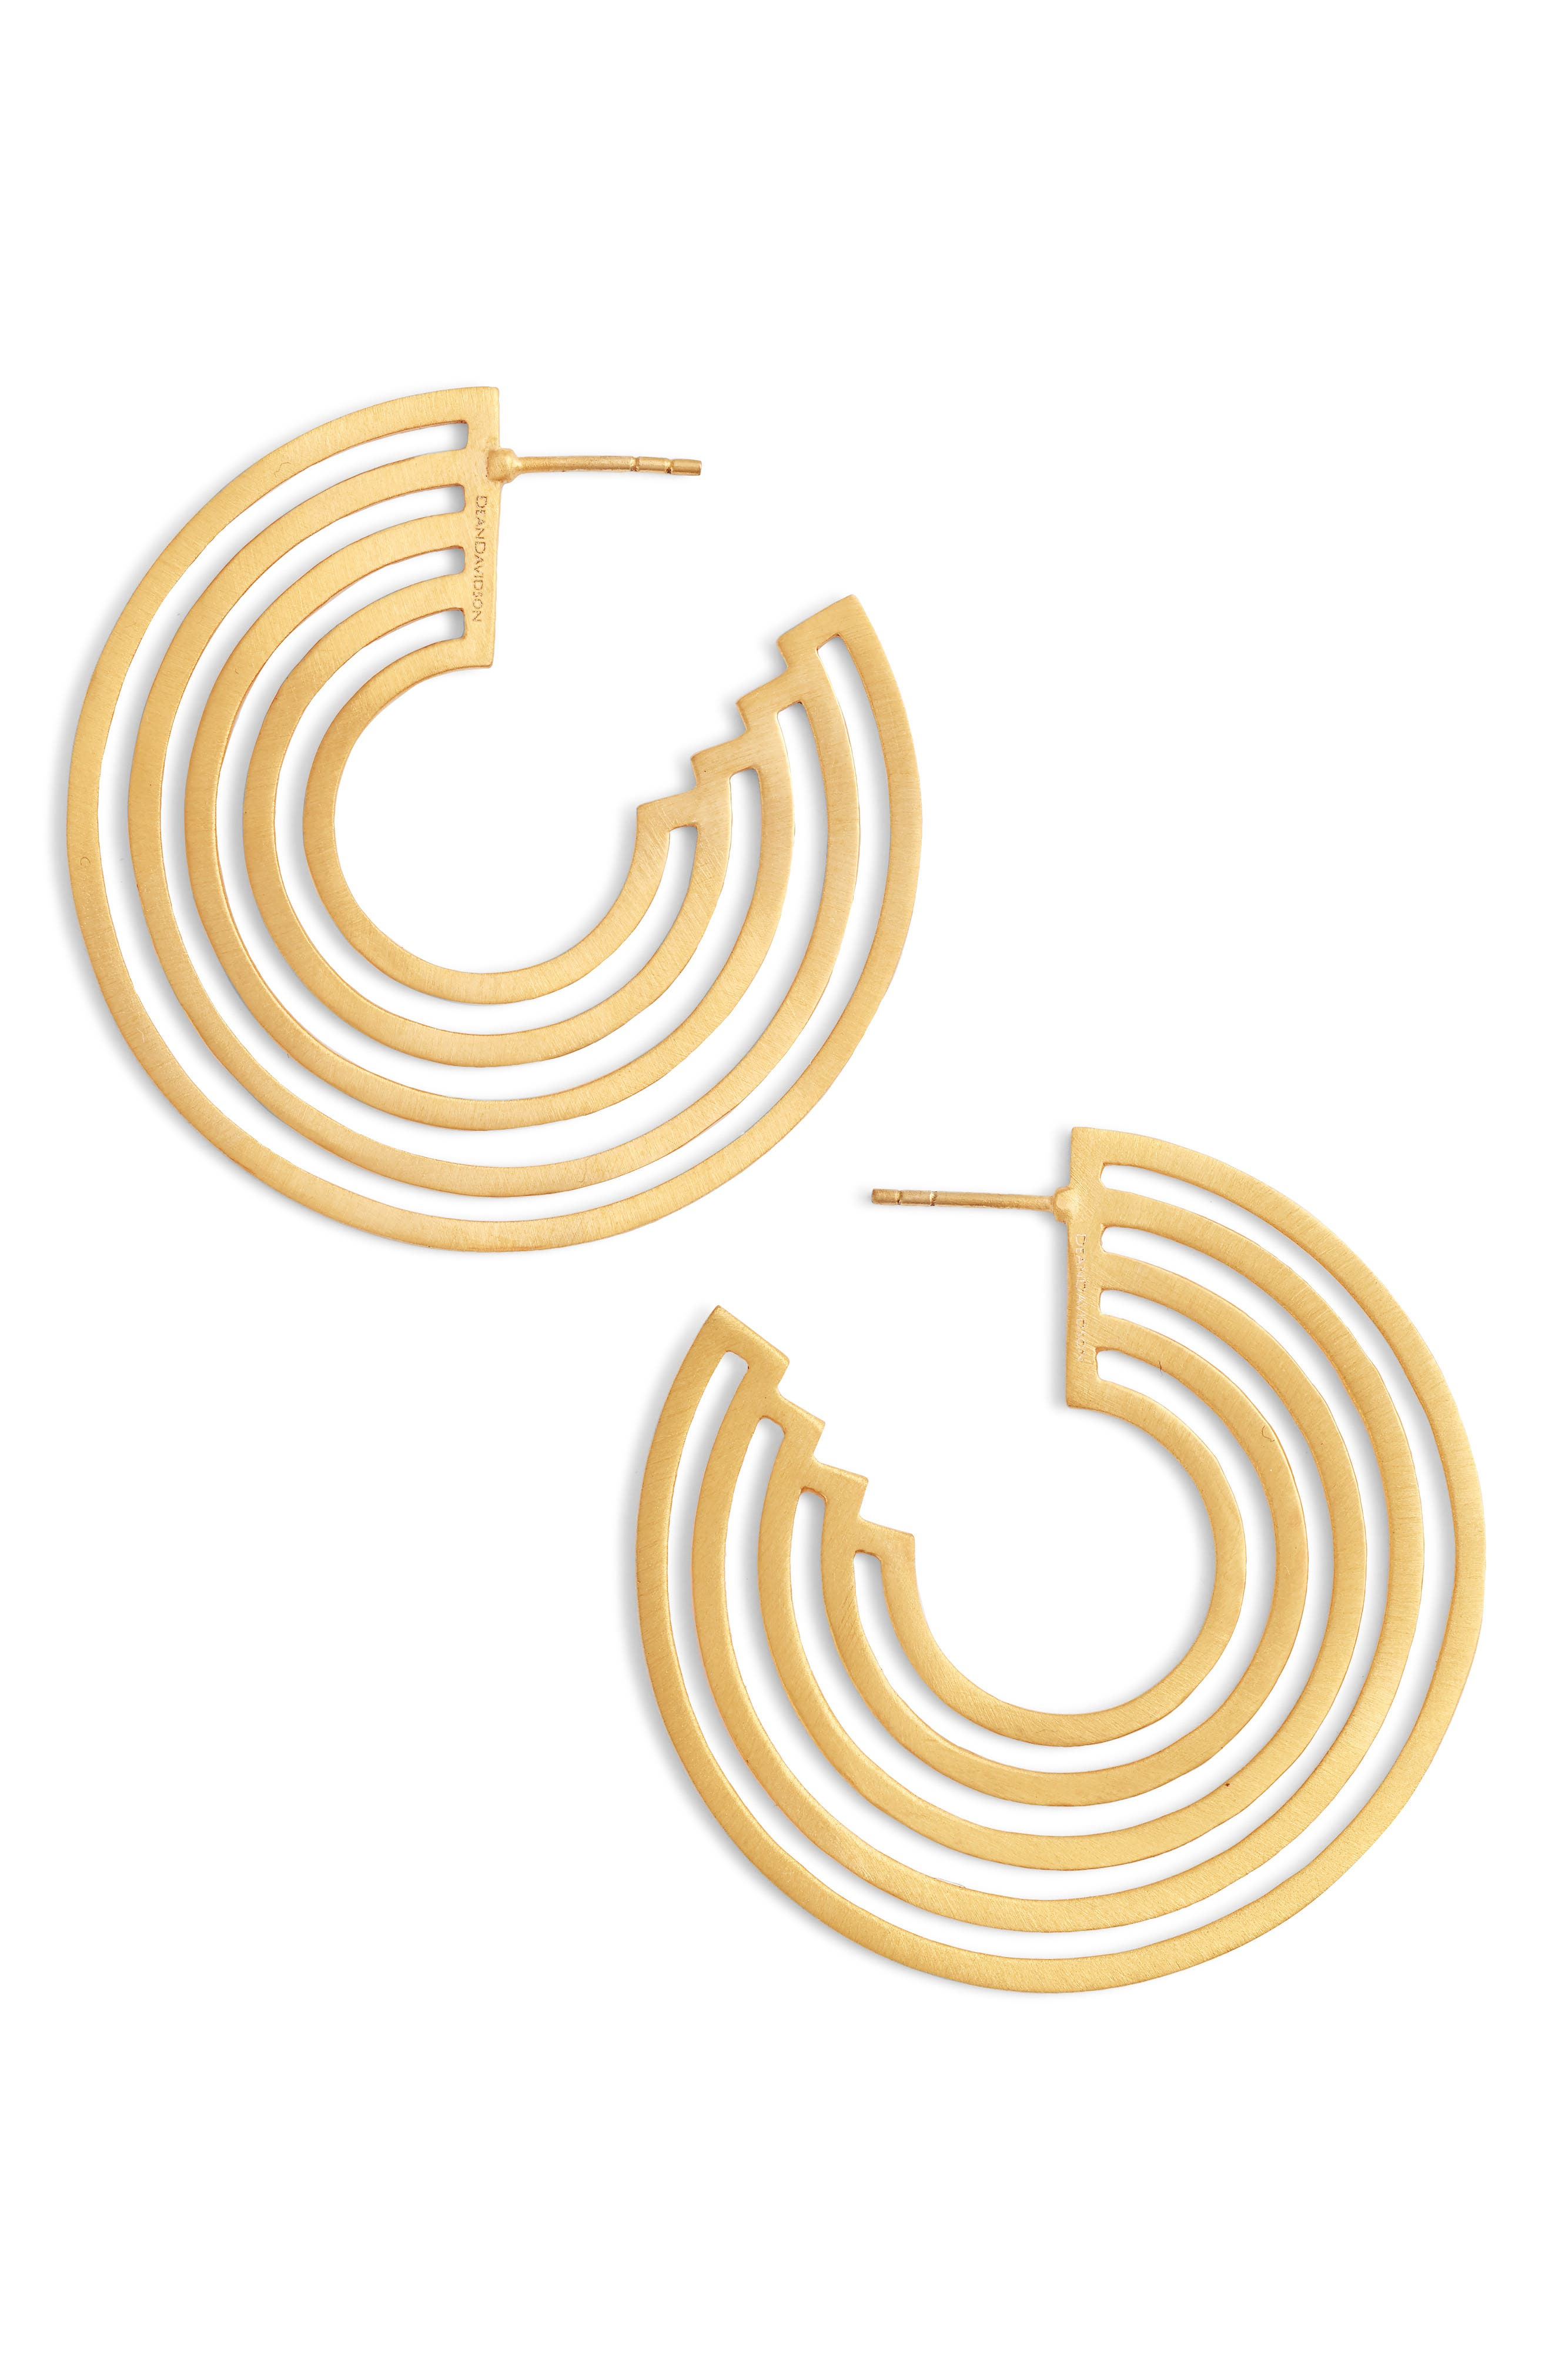 Solar Concentric Hoop Earrings,                         Main,                         color, 710